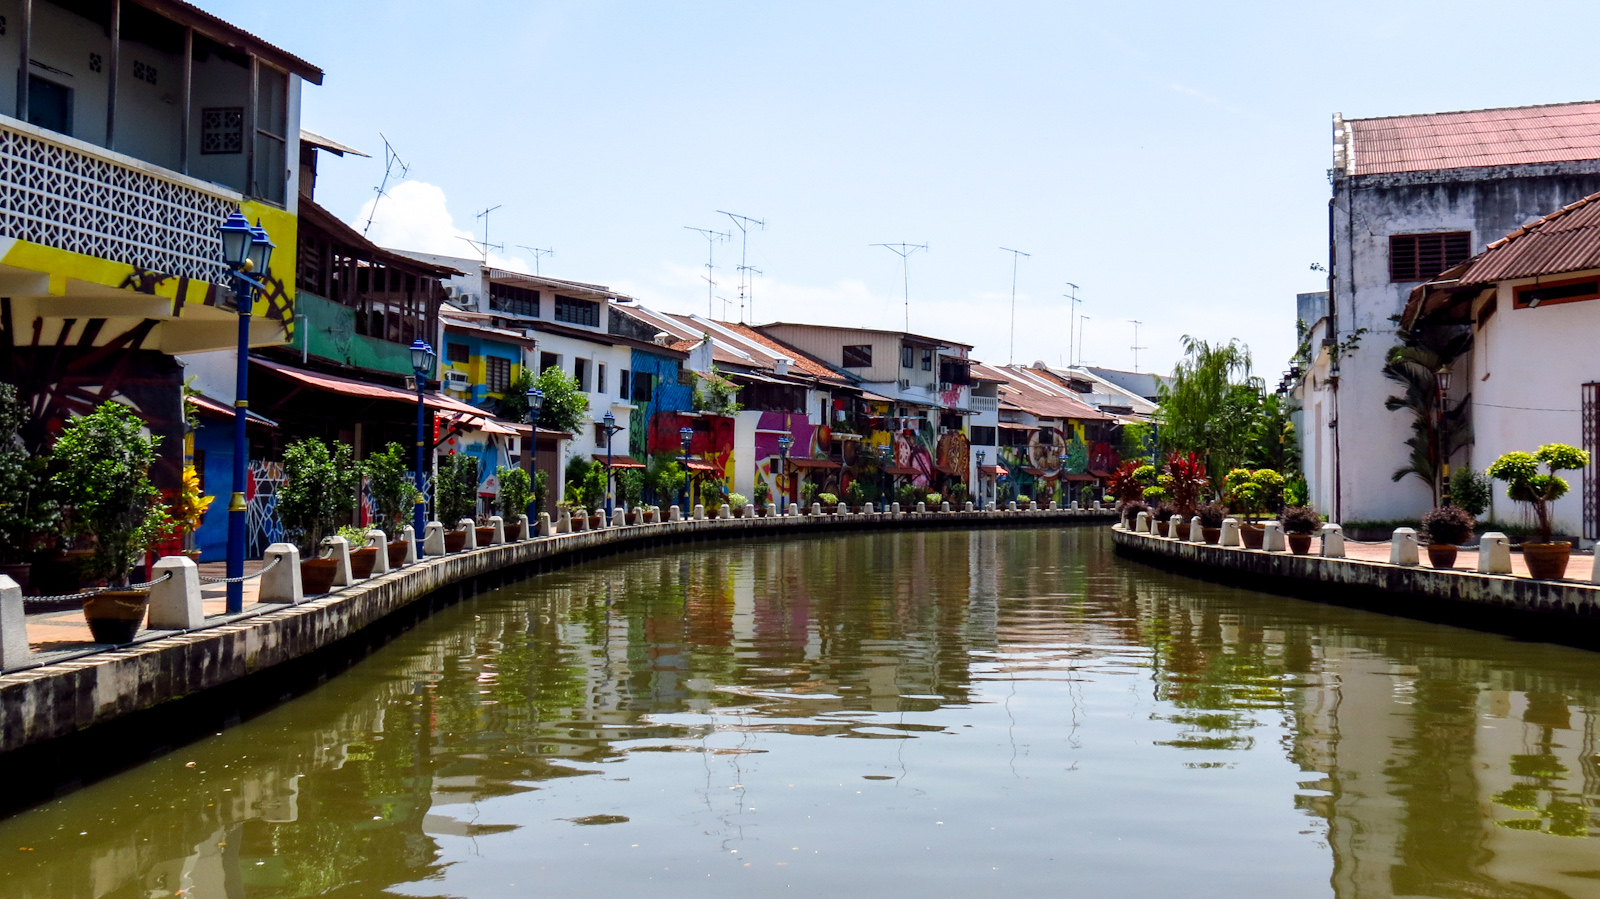 Malezija River-view-malacca-painted-houses